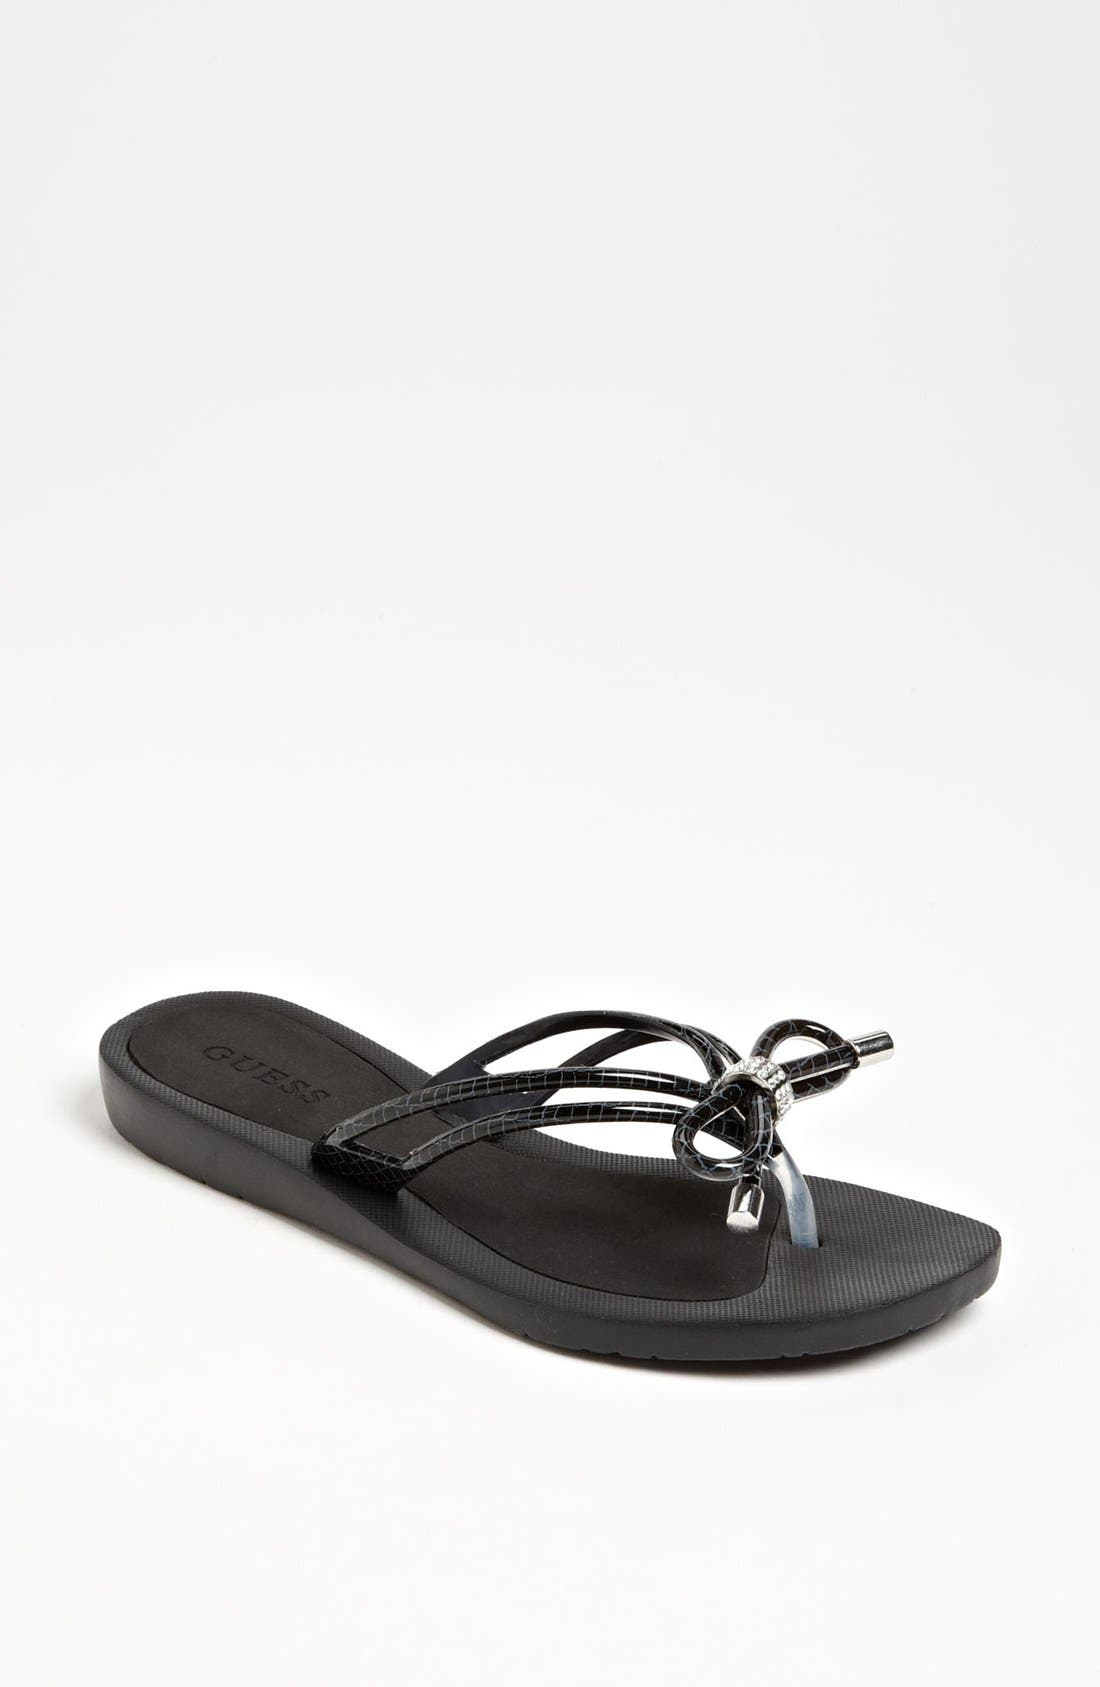 Alternate Image 1 Selected - GUESS 'Talya' Sandal